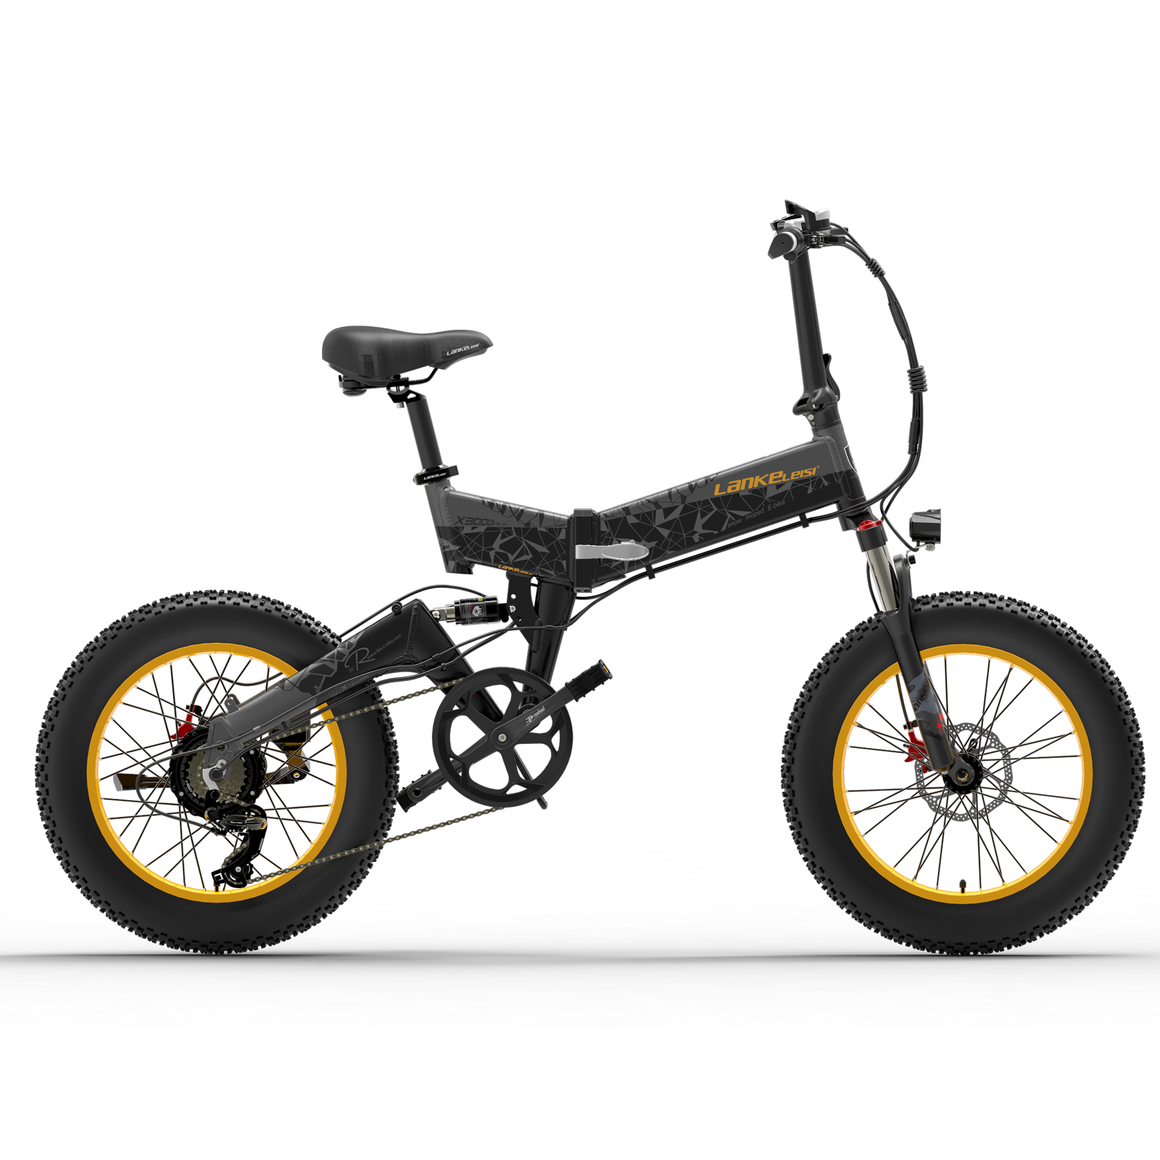 LANKELEISI X3000PLUS SNOW ELECTRIC BIKE 46KM/H 1000W 48V 10.4AH - POLAND